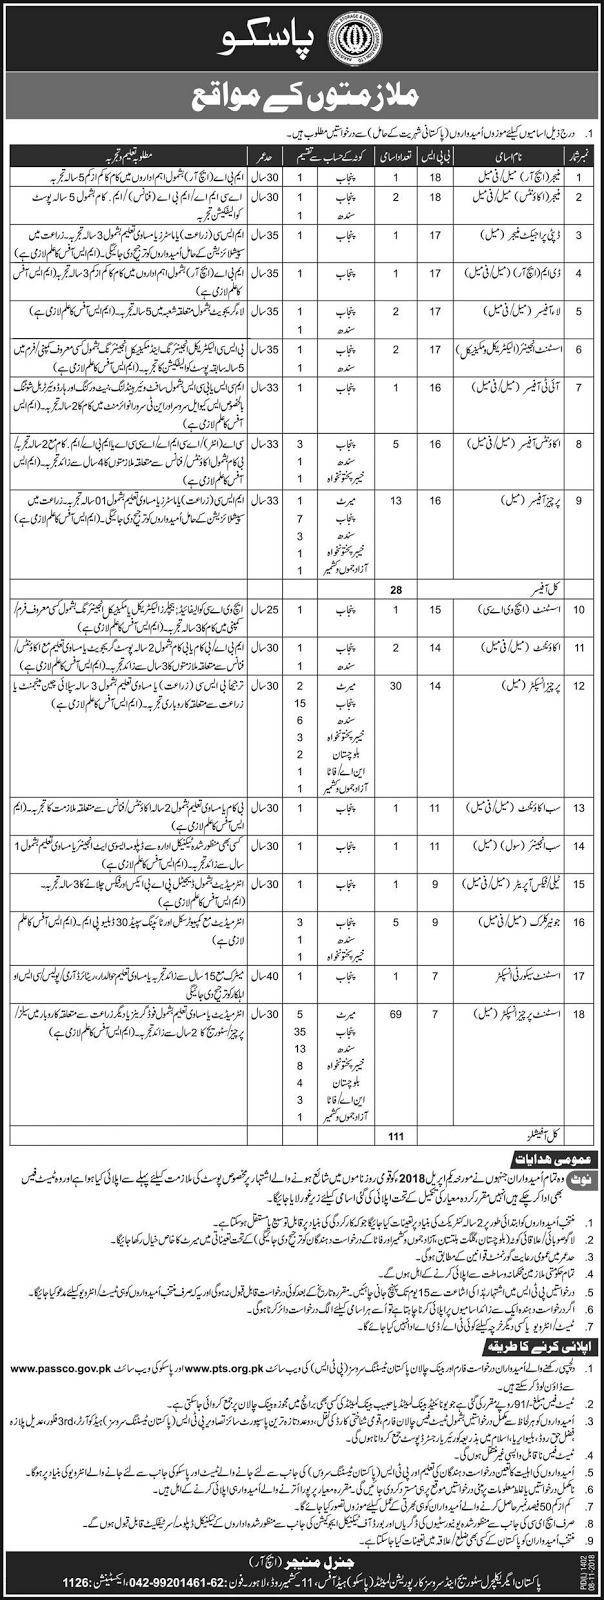 Job Postings In Pakistan Agricultural Storage & Services Corporation Limited 08 Nov 2018